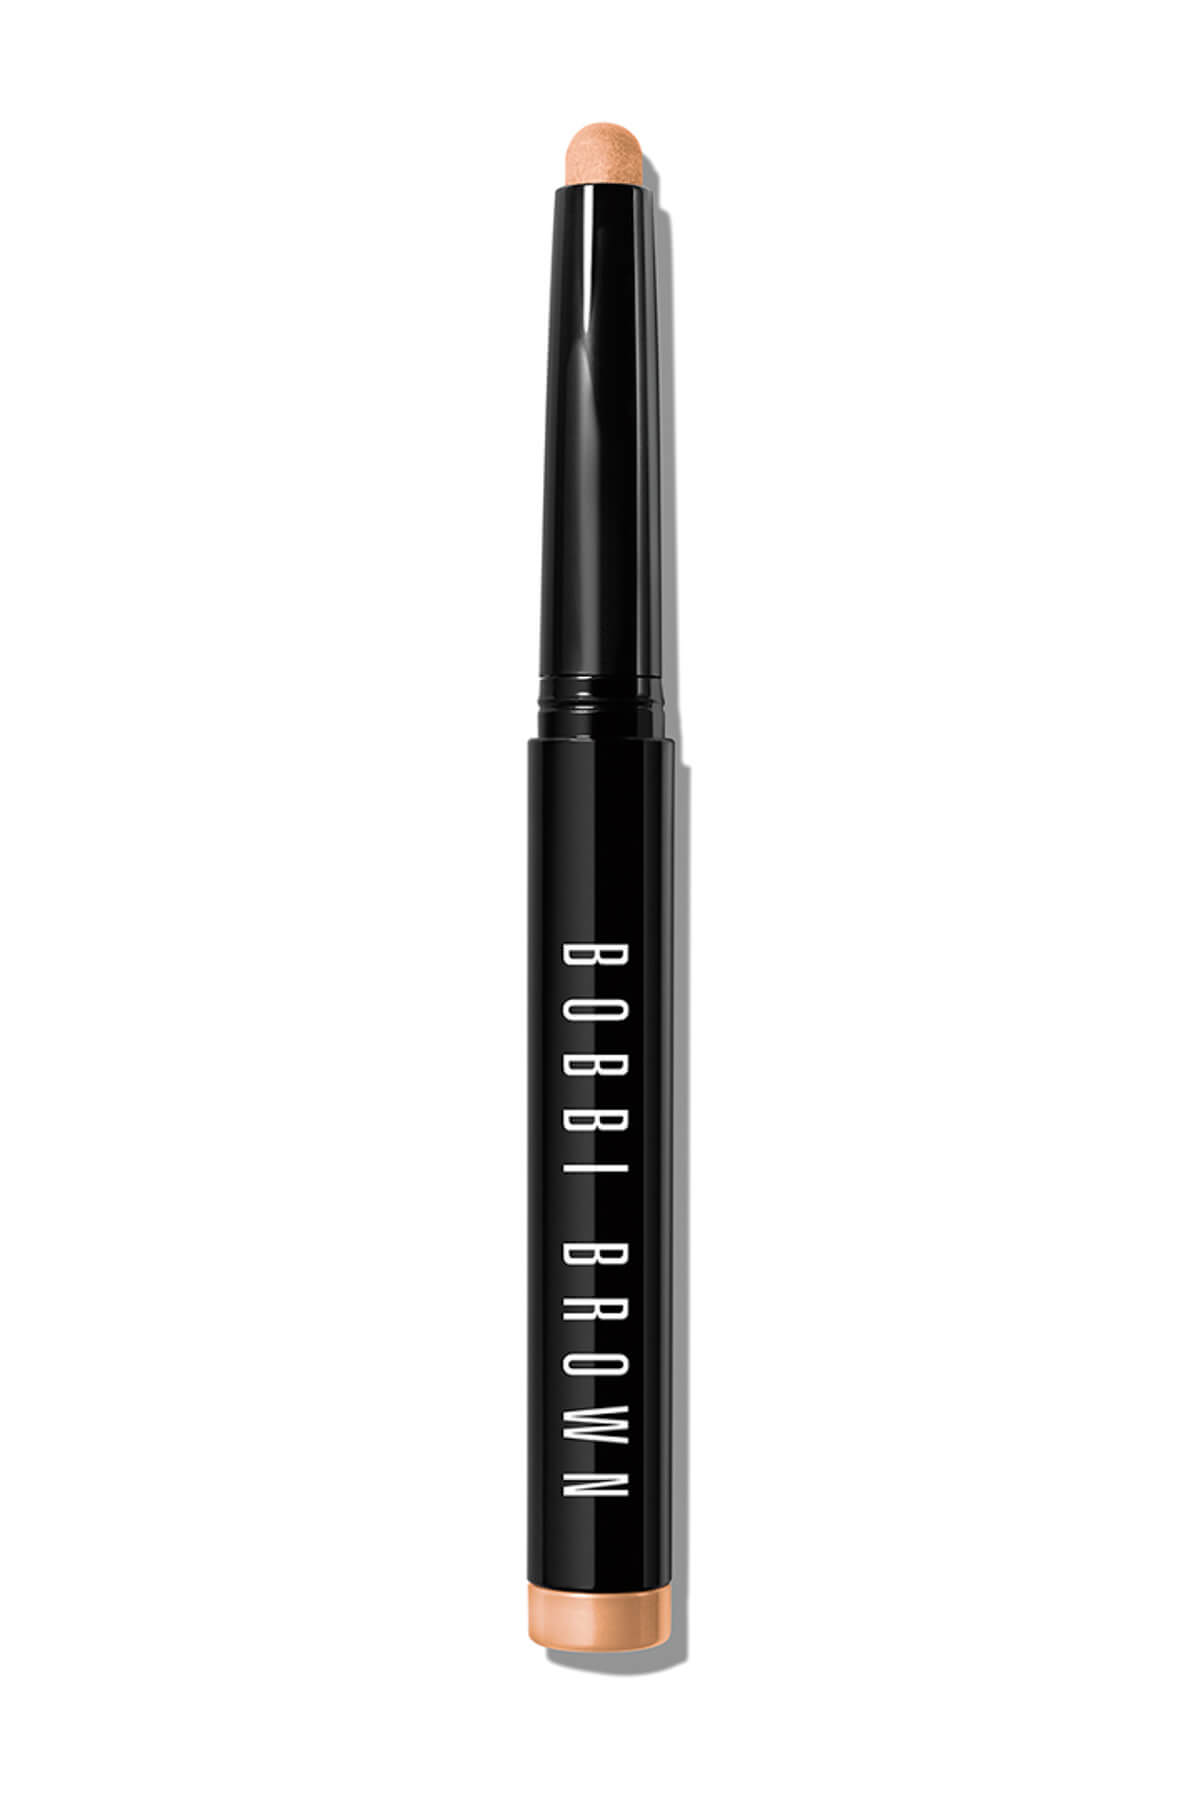 Bobbı Brown Stick Göz Farı – Long Wear Cream Shadow Pink Sparkle 716170148090 – 102.21 TL